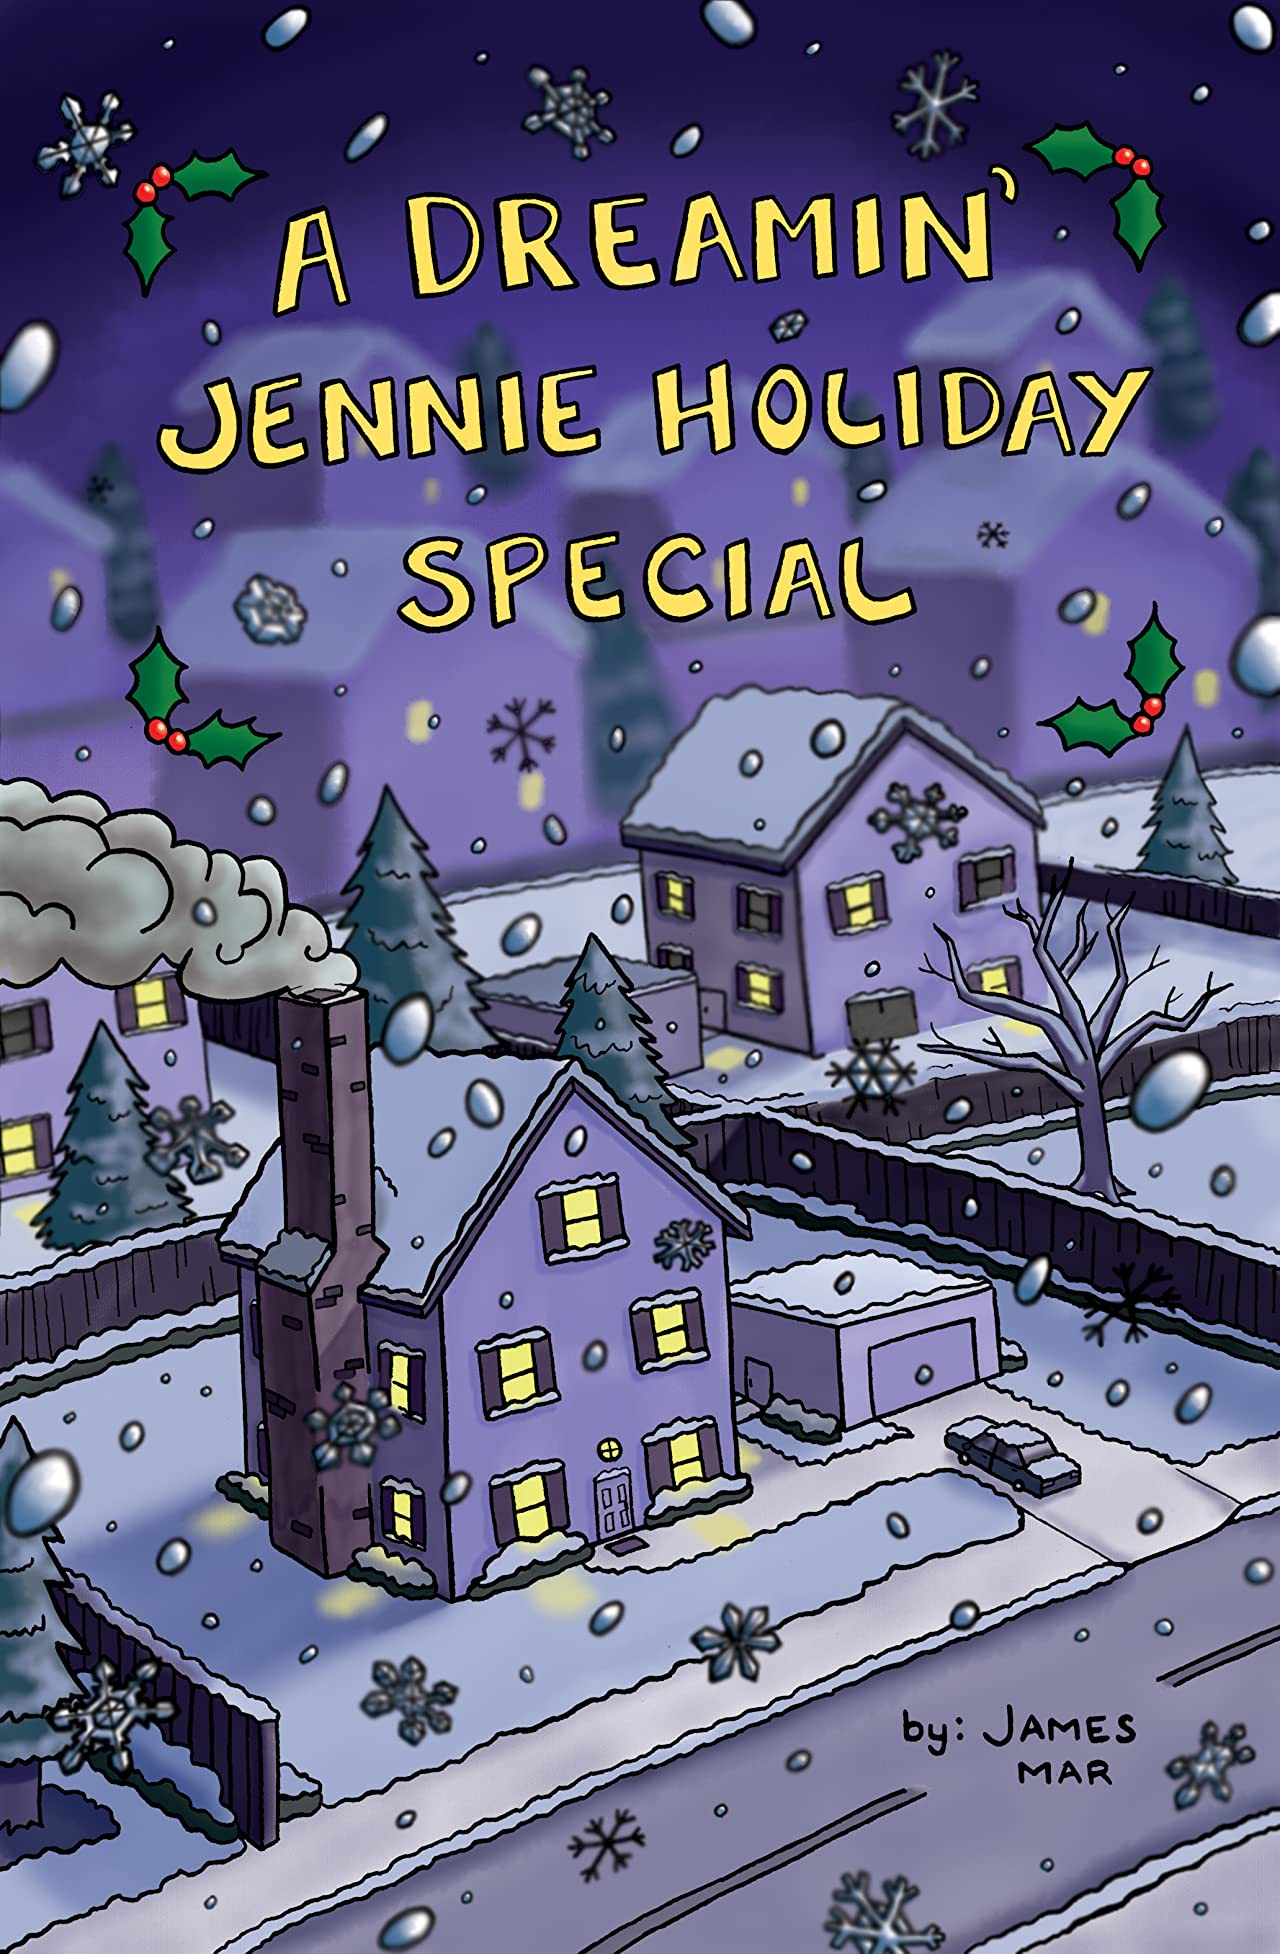 A Dreamin' Jennie Holiday Special